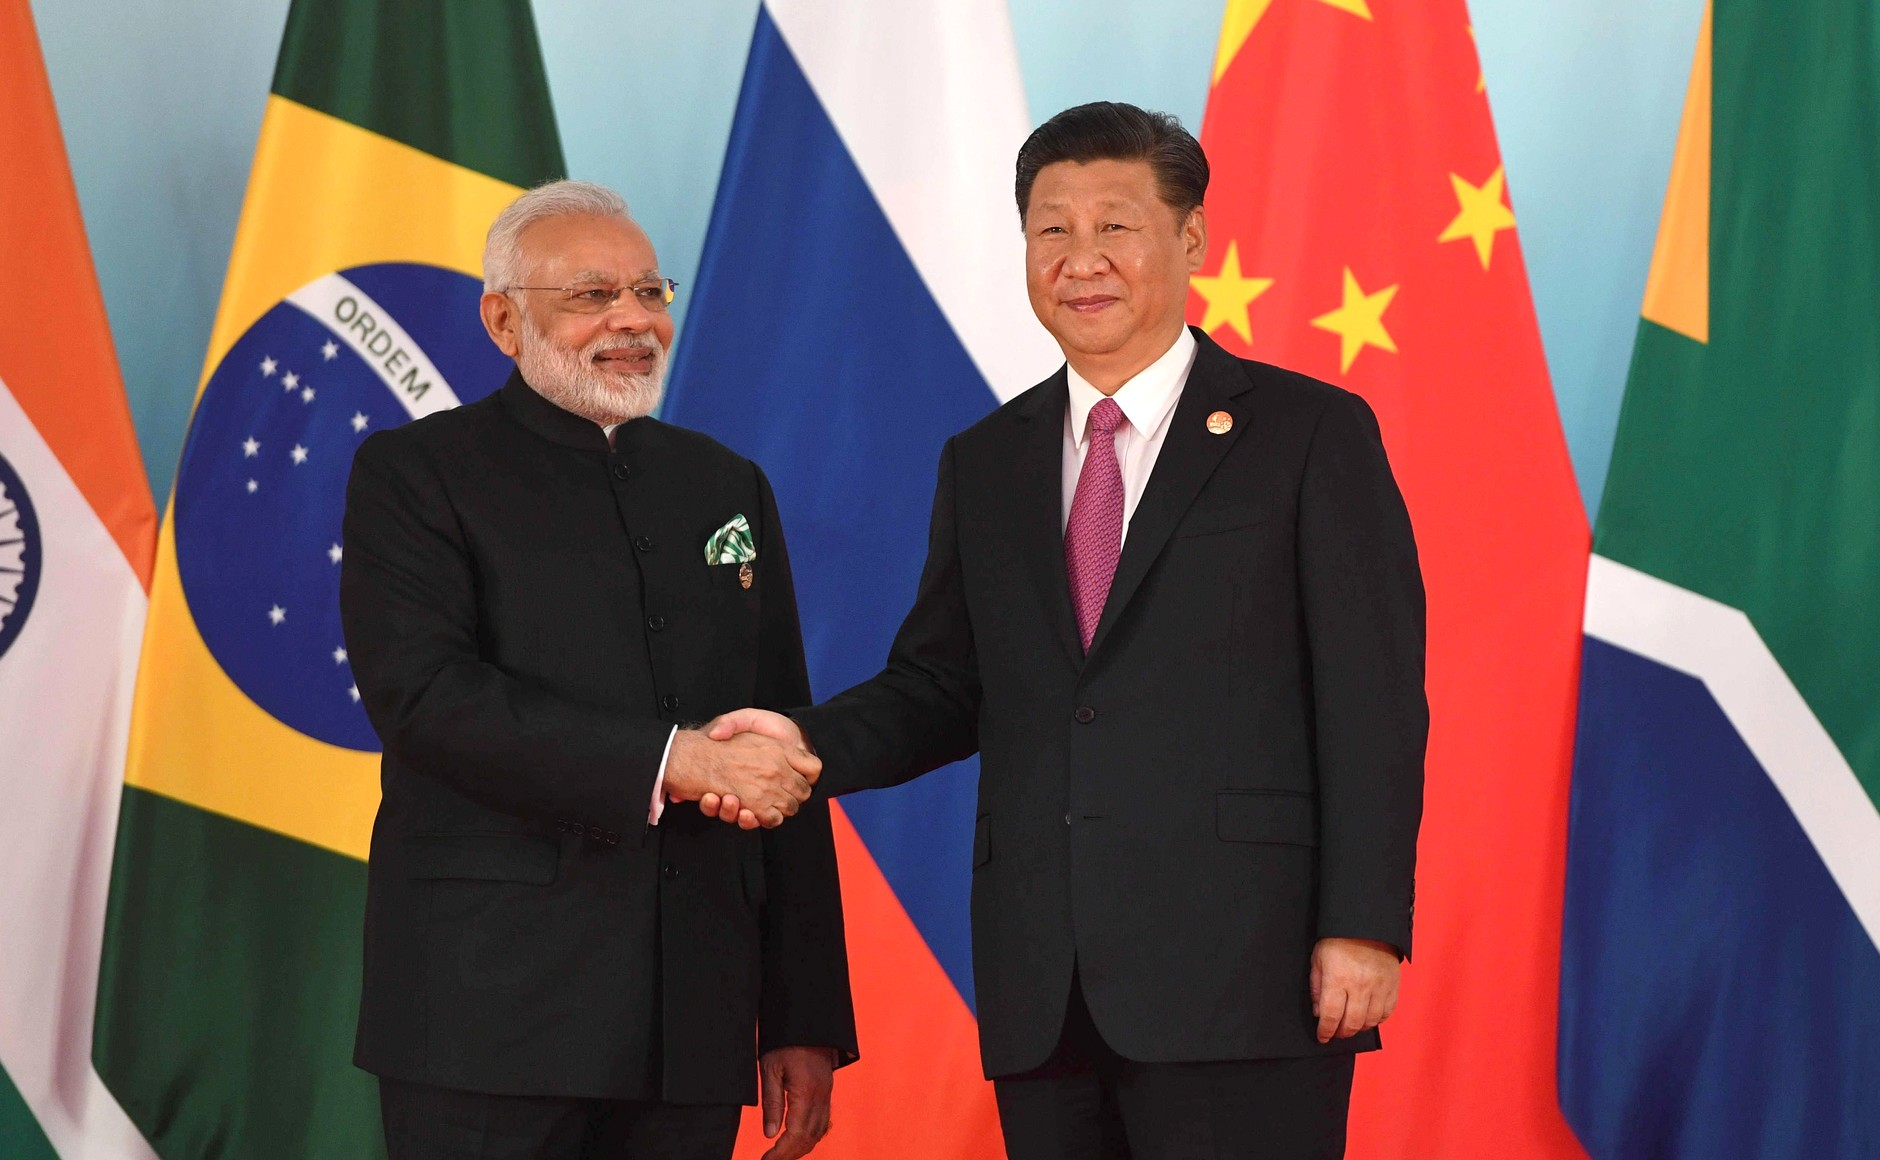 File:Prime Minister of India Narendra Modi and President of China Xi Jinping before the beginning of the 2017 BRICS Leaders' meeting.jpg - Wikimedia Commons